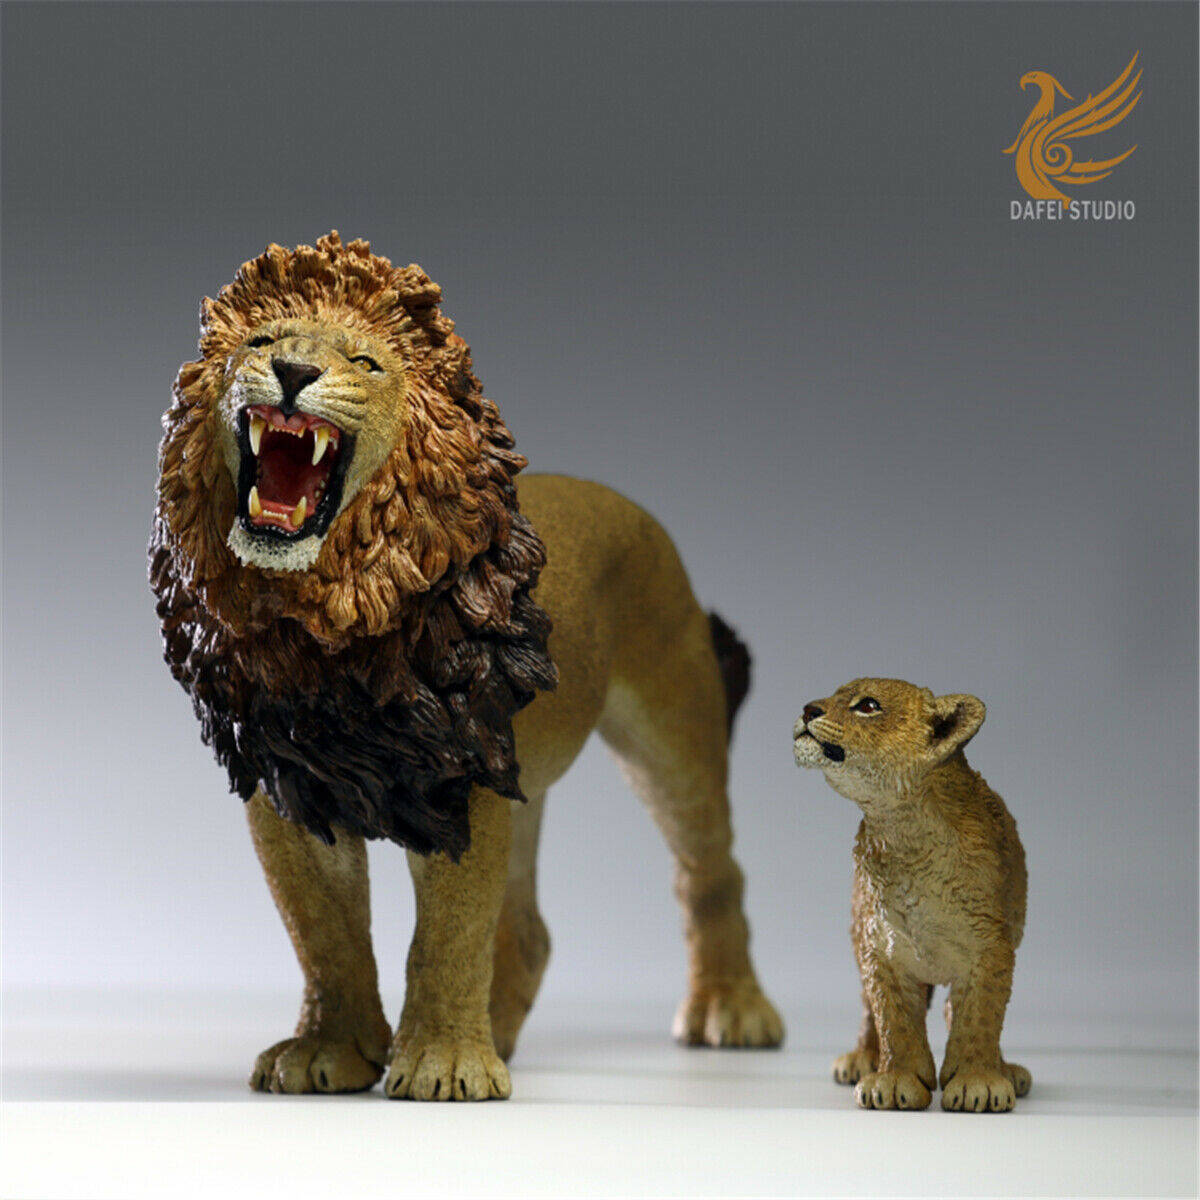 DF 1 12 African African African Lion King and Son Model Panthera leo massaicus Animal Toys Gift 93d